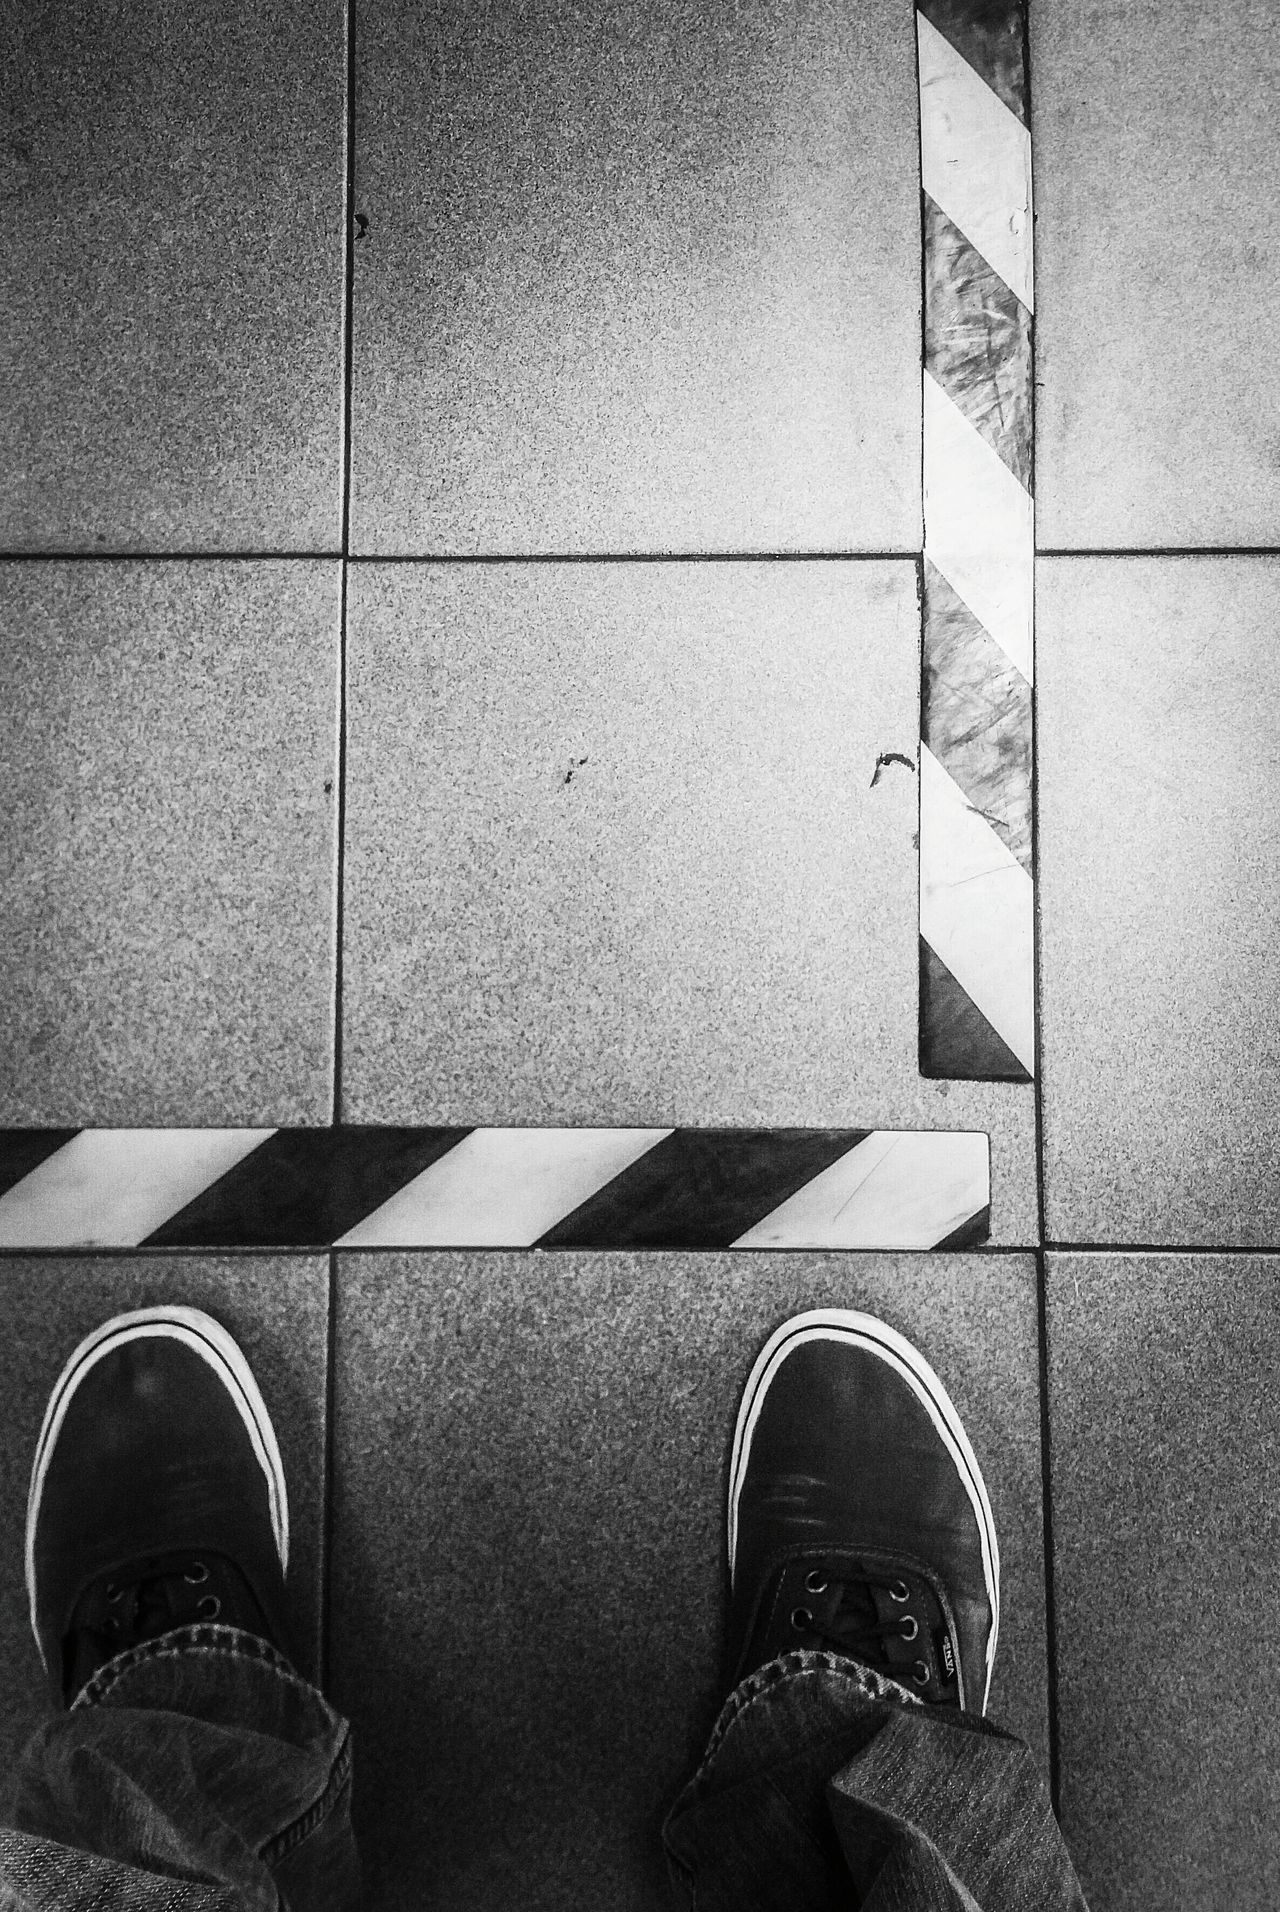 Human Leg Shoe Tiled Floor Safety First Demarcation Warning Keep Away Manufacturing Core Values Monochrome Photography Black & White Taking Photos Chemical Plant Puerto Rico Caribbean Life At Work